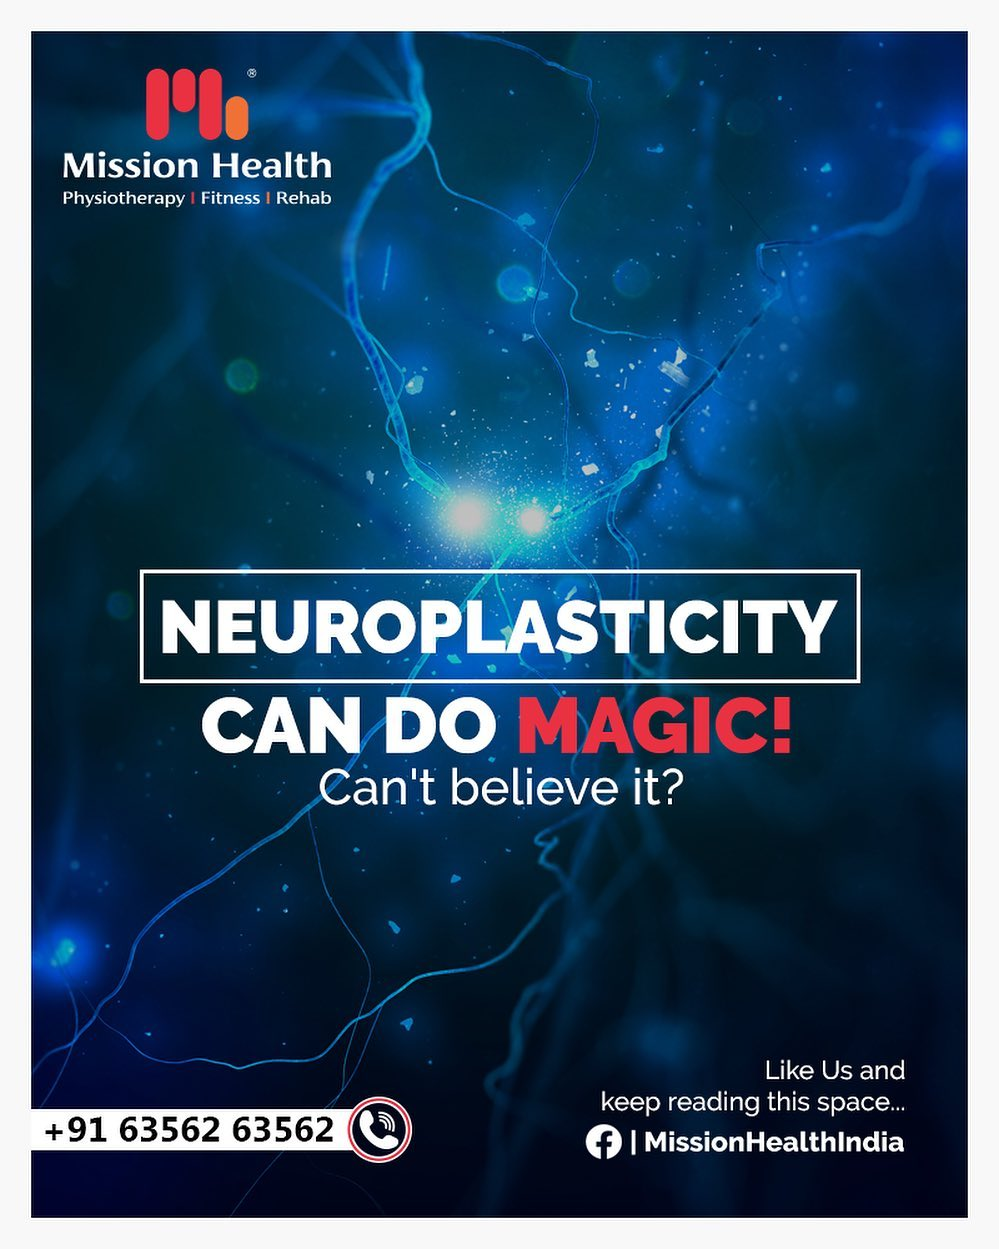 NeuroPlasticity can bring Magical effects to patients suffering from Brain Stroke, Paralysis, Traumatic Brain Injuries, etc.  To know more, like https://www.facebook.com/MissionHealthIndia/  Call +916356263562 www.missionhealth.co.in  #IndiaFightsCorona #Coronavirus #stayathome #lockdownopd #lifeafterstroke #physiotherapy #neurorehab #stroke #neuroplasticity #strokeinjuries #paralysis #paralysisrecovery #strokerecovery #Roboticsneurorehab #roboticsinneurophysiotherapy #MissionHealth #MissionHealthIndia #AbilityClinic #MovementIsLife